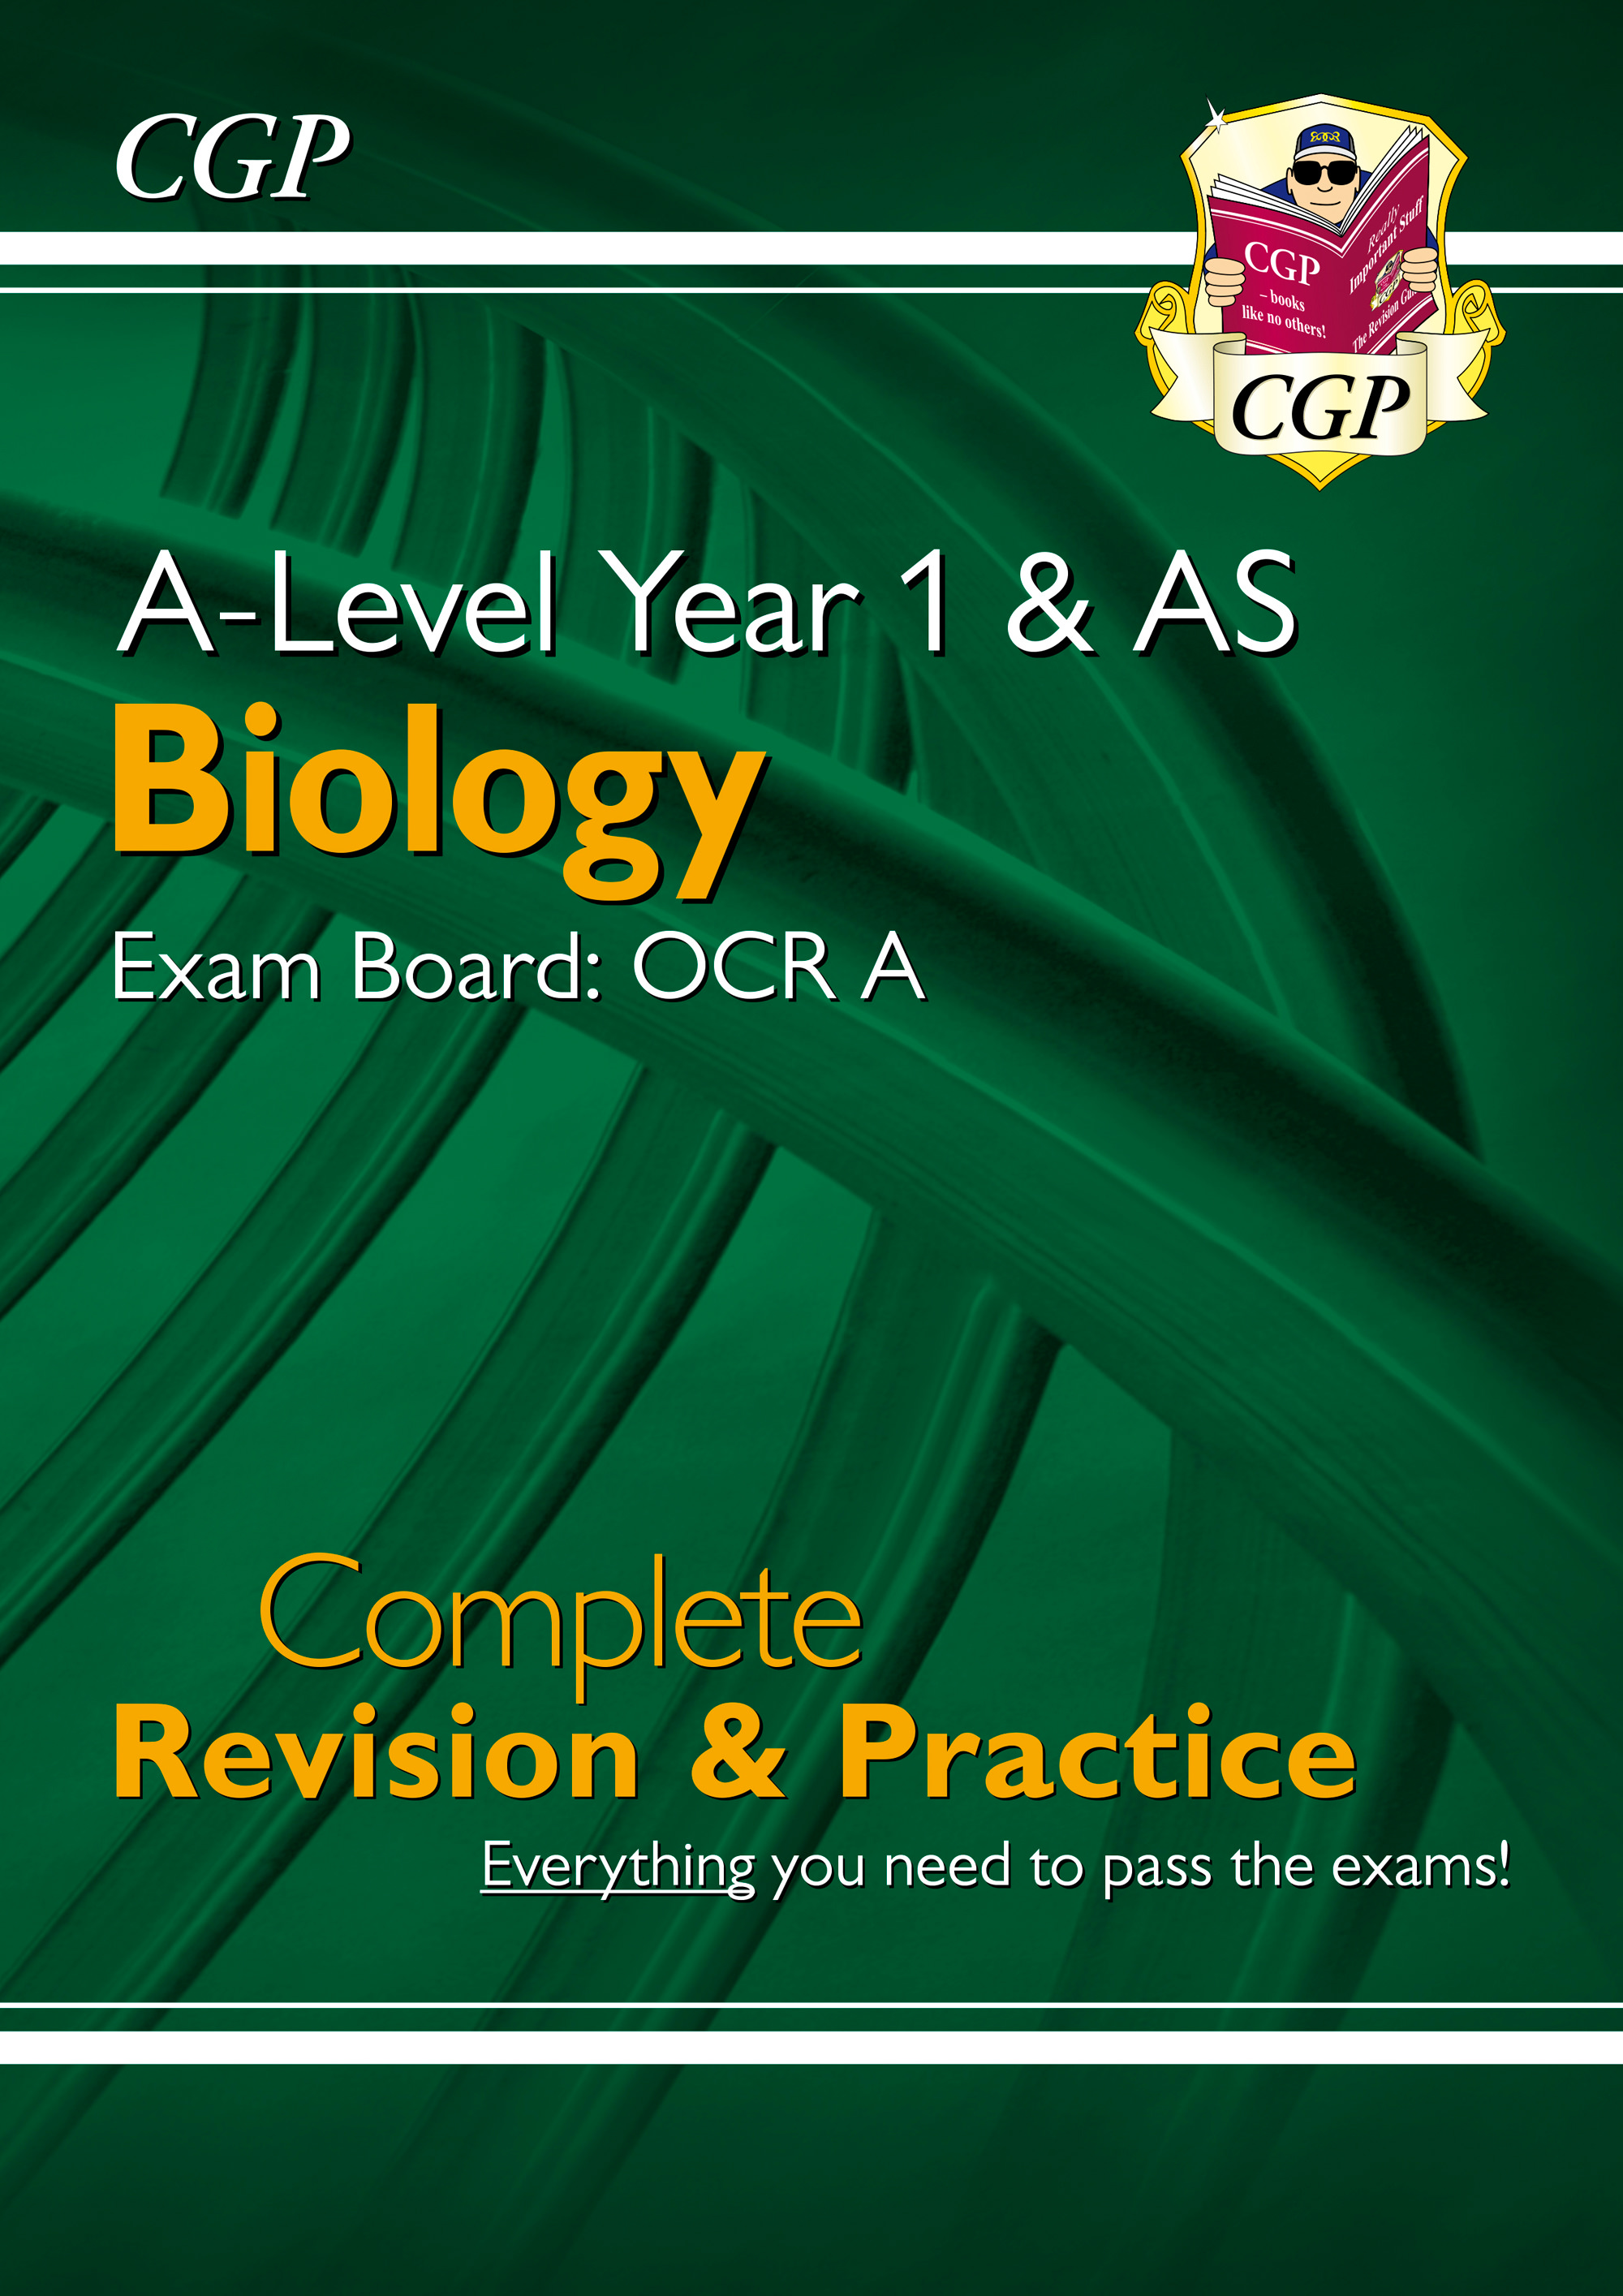 BRAR55DK - New A-Level Biology for 2018: OCR A Year 1 & AS Complete Revision & Practice